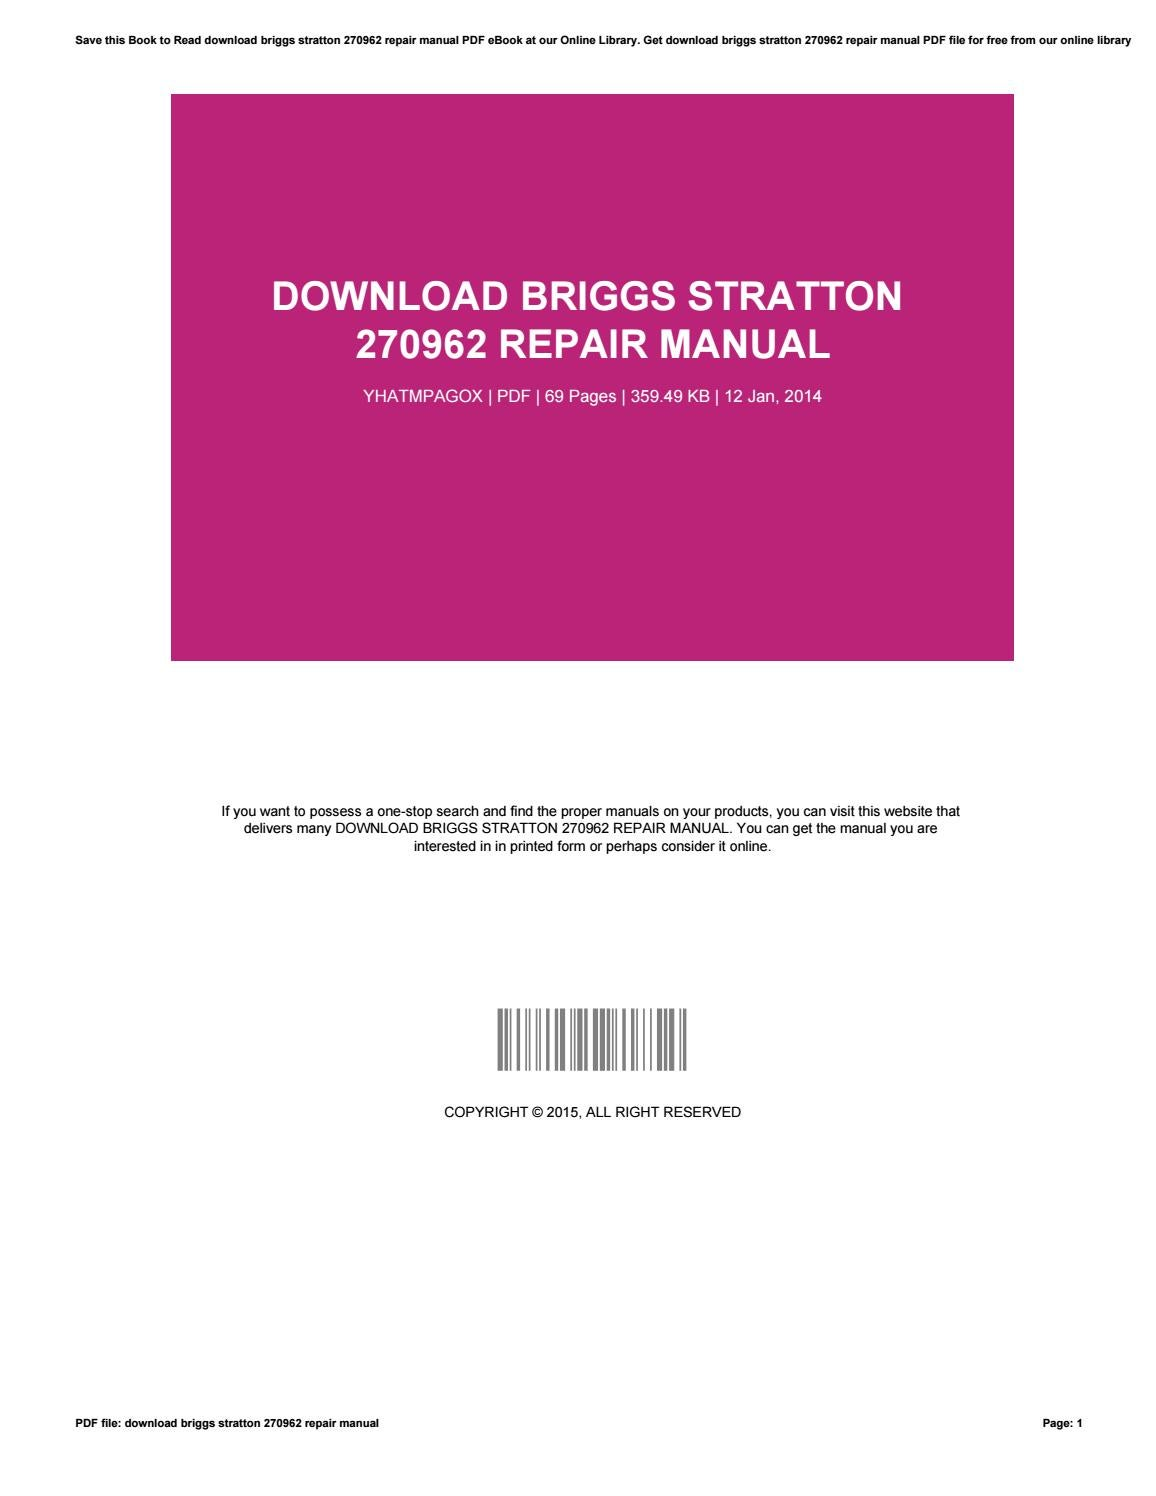 download briggs stratton 270962 repair manual by vssms678 issuu